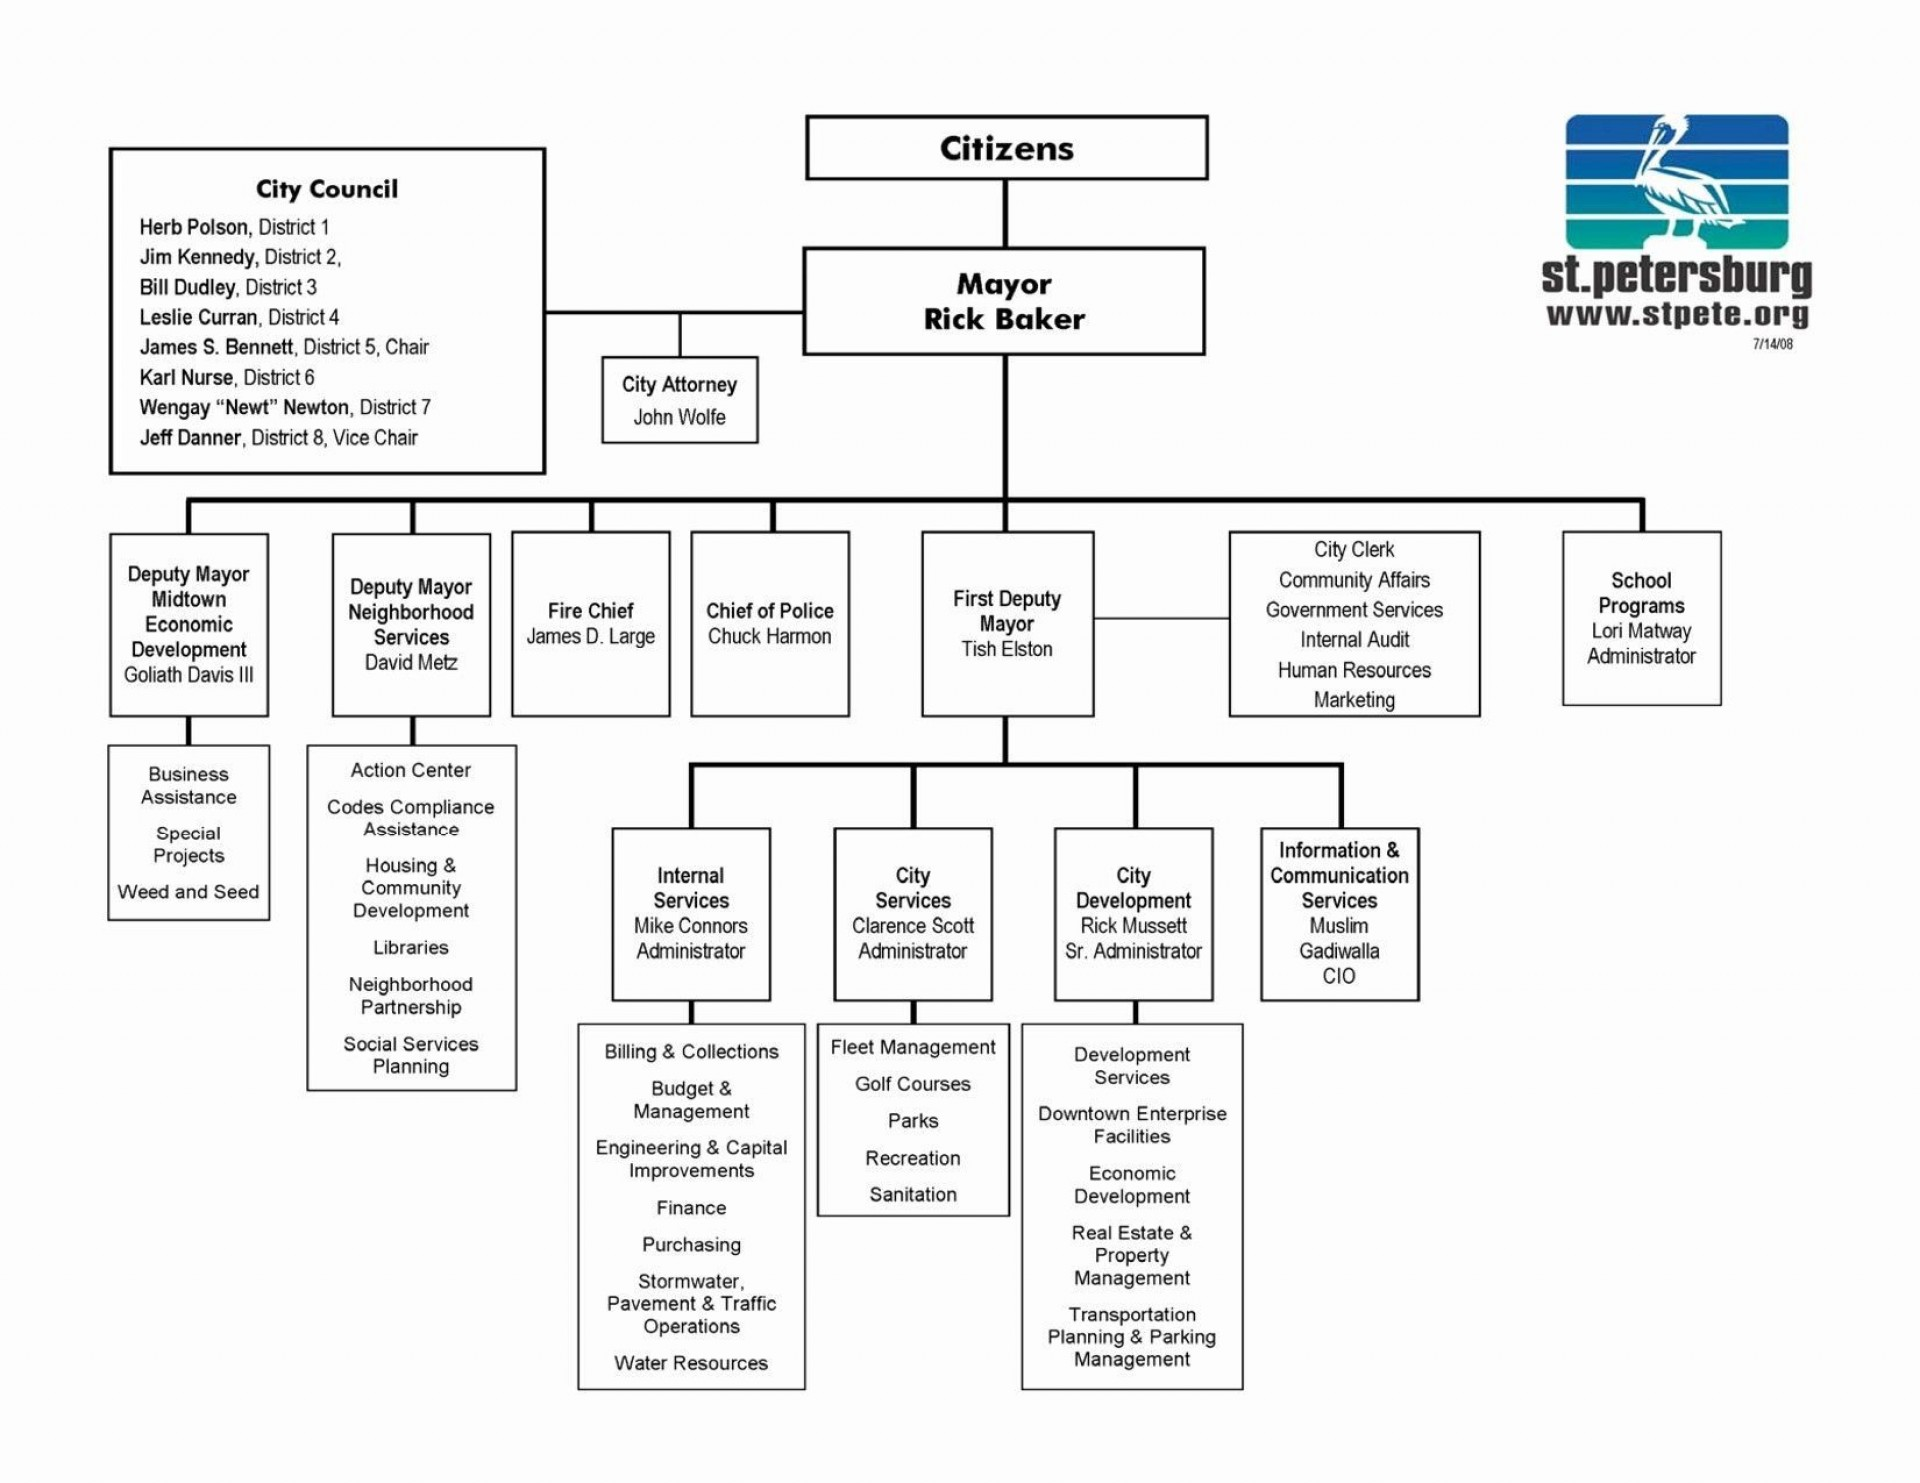 002 Shocking Microsoft Office Organizational Chart Template Highest Clarity  Templates Flow Excel1920